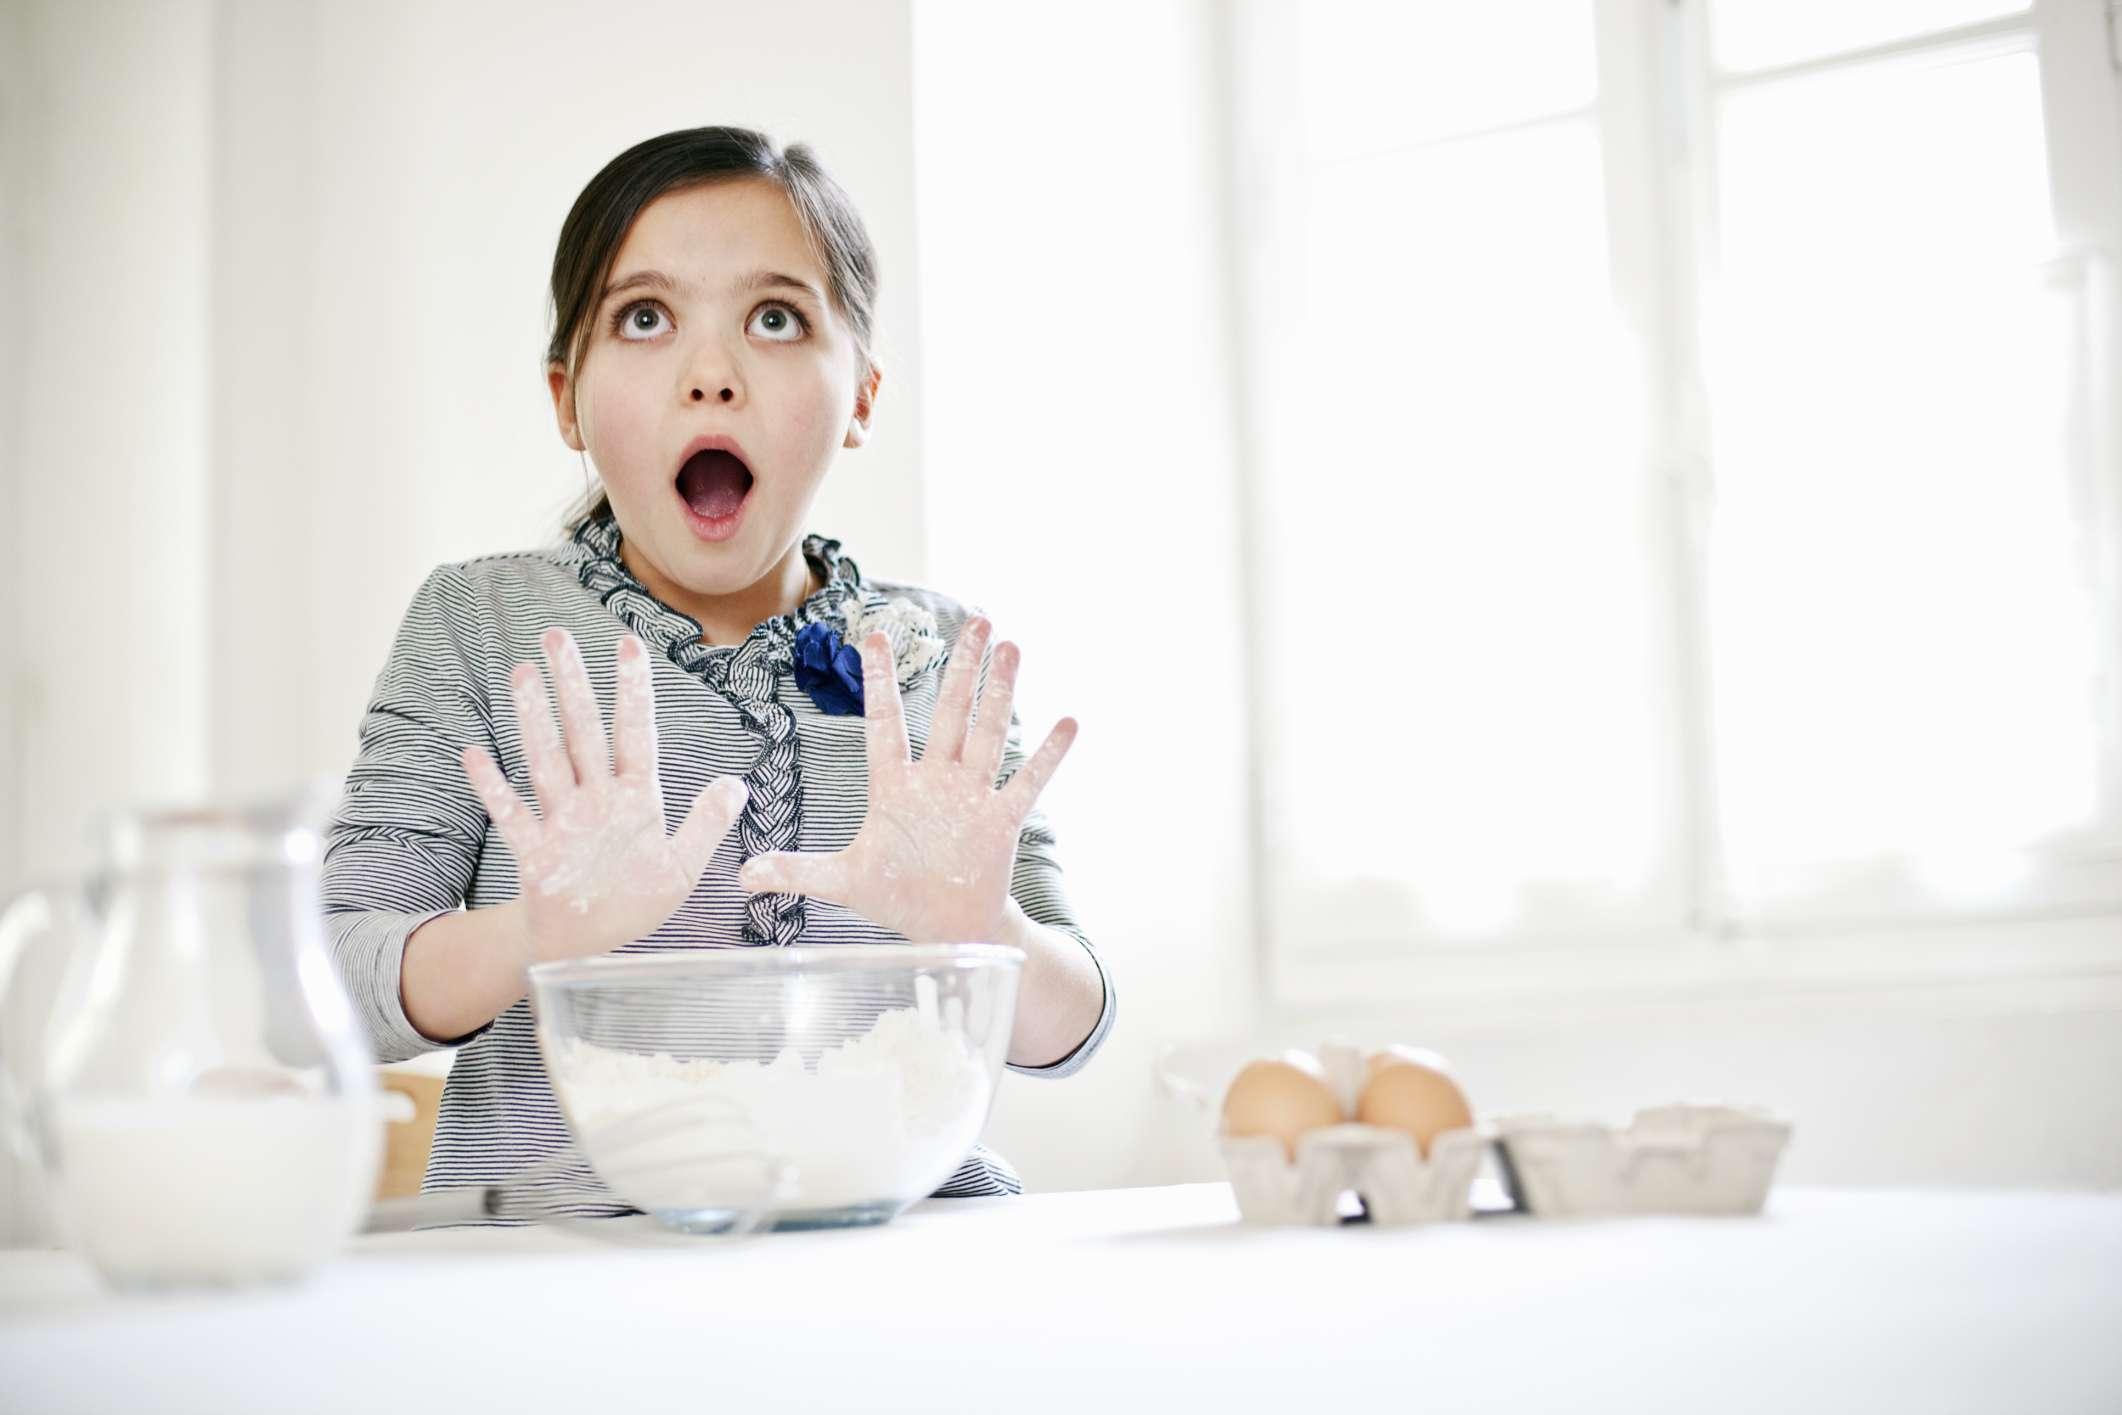 Girl standing at counter with baking ingredients